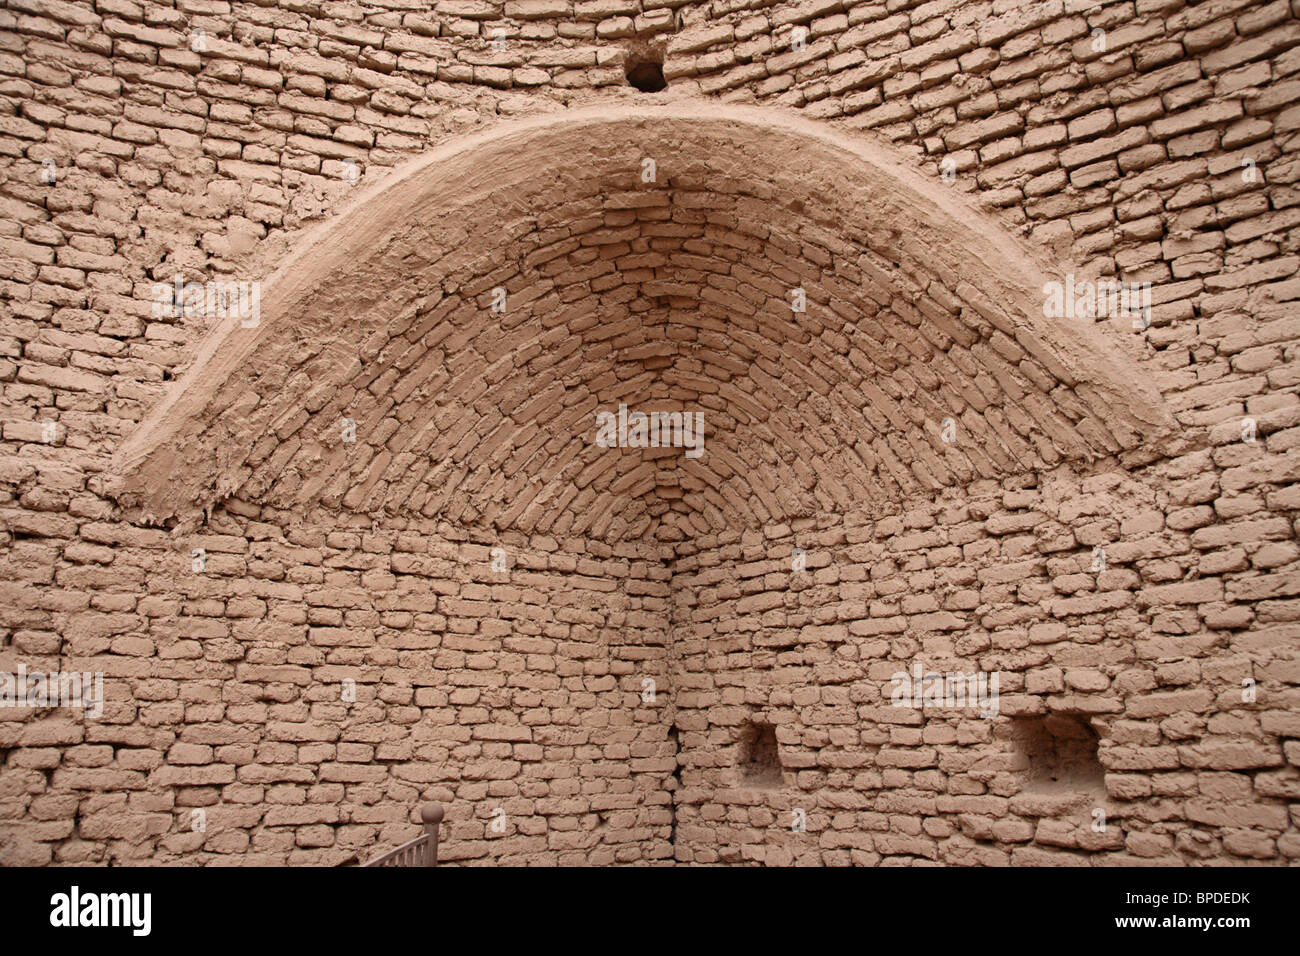 A mud brick wall and arch in the ruins of the ancient city of Jiaohe in the Takla Makan desert in Xinjiang, North - Stock Image